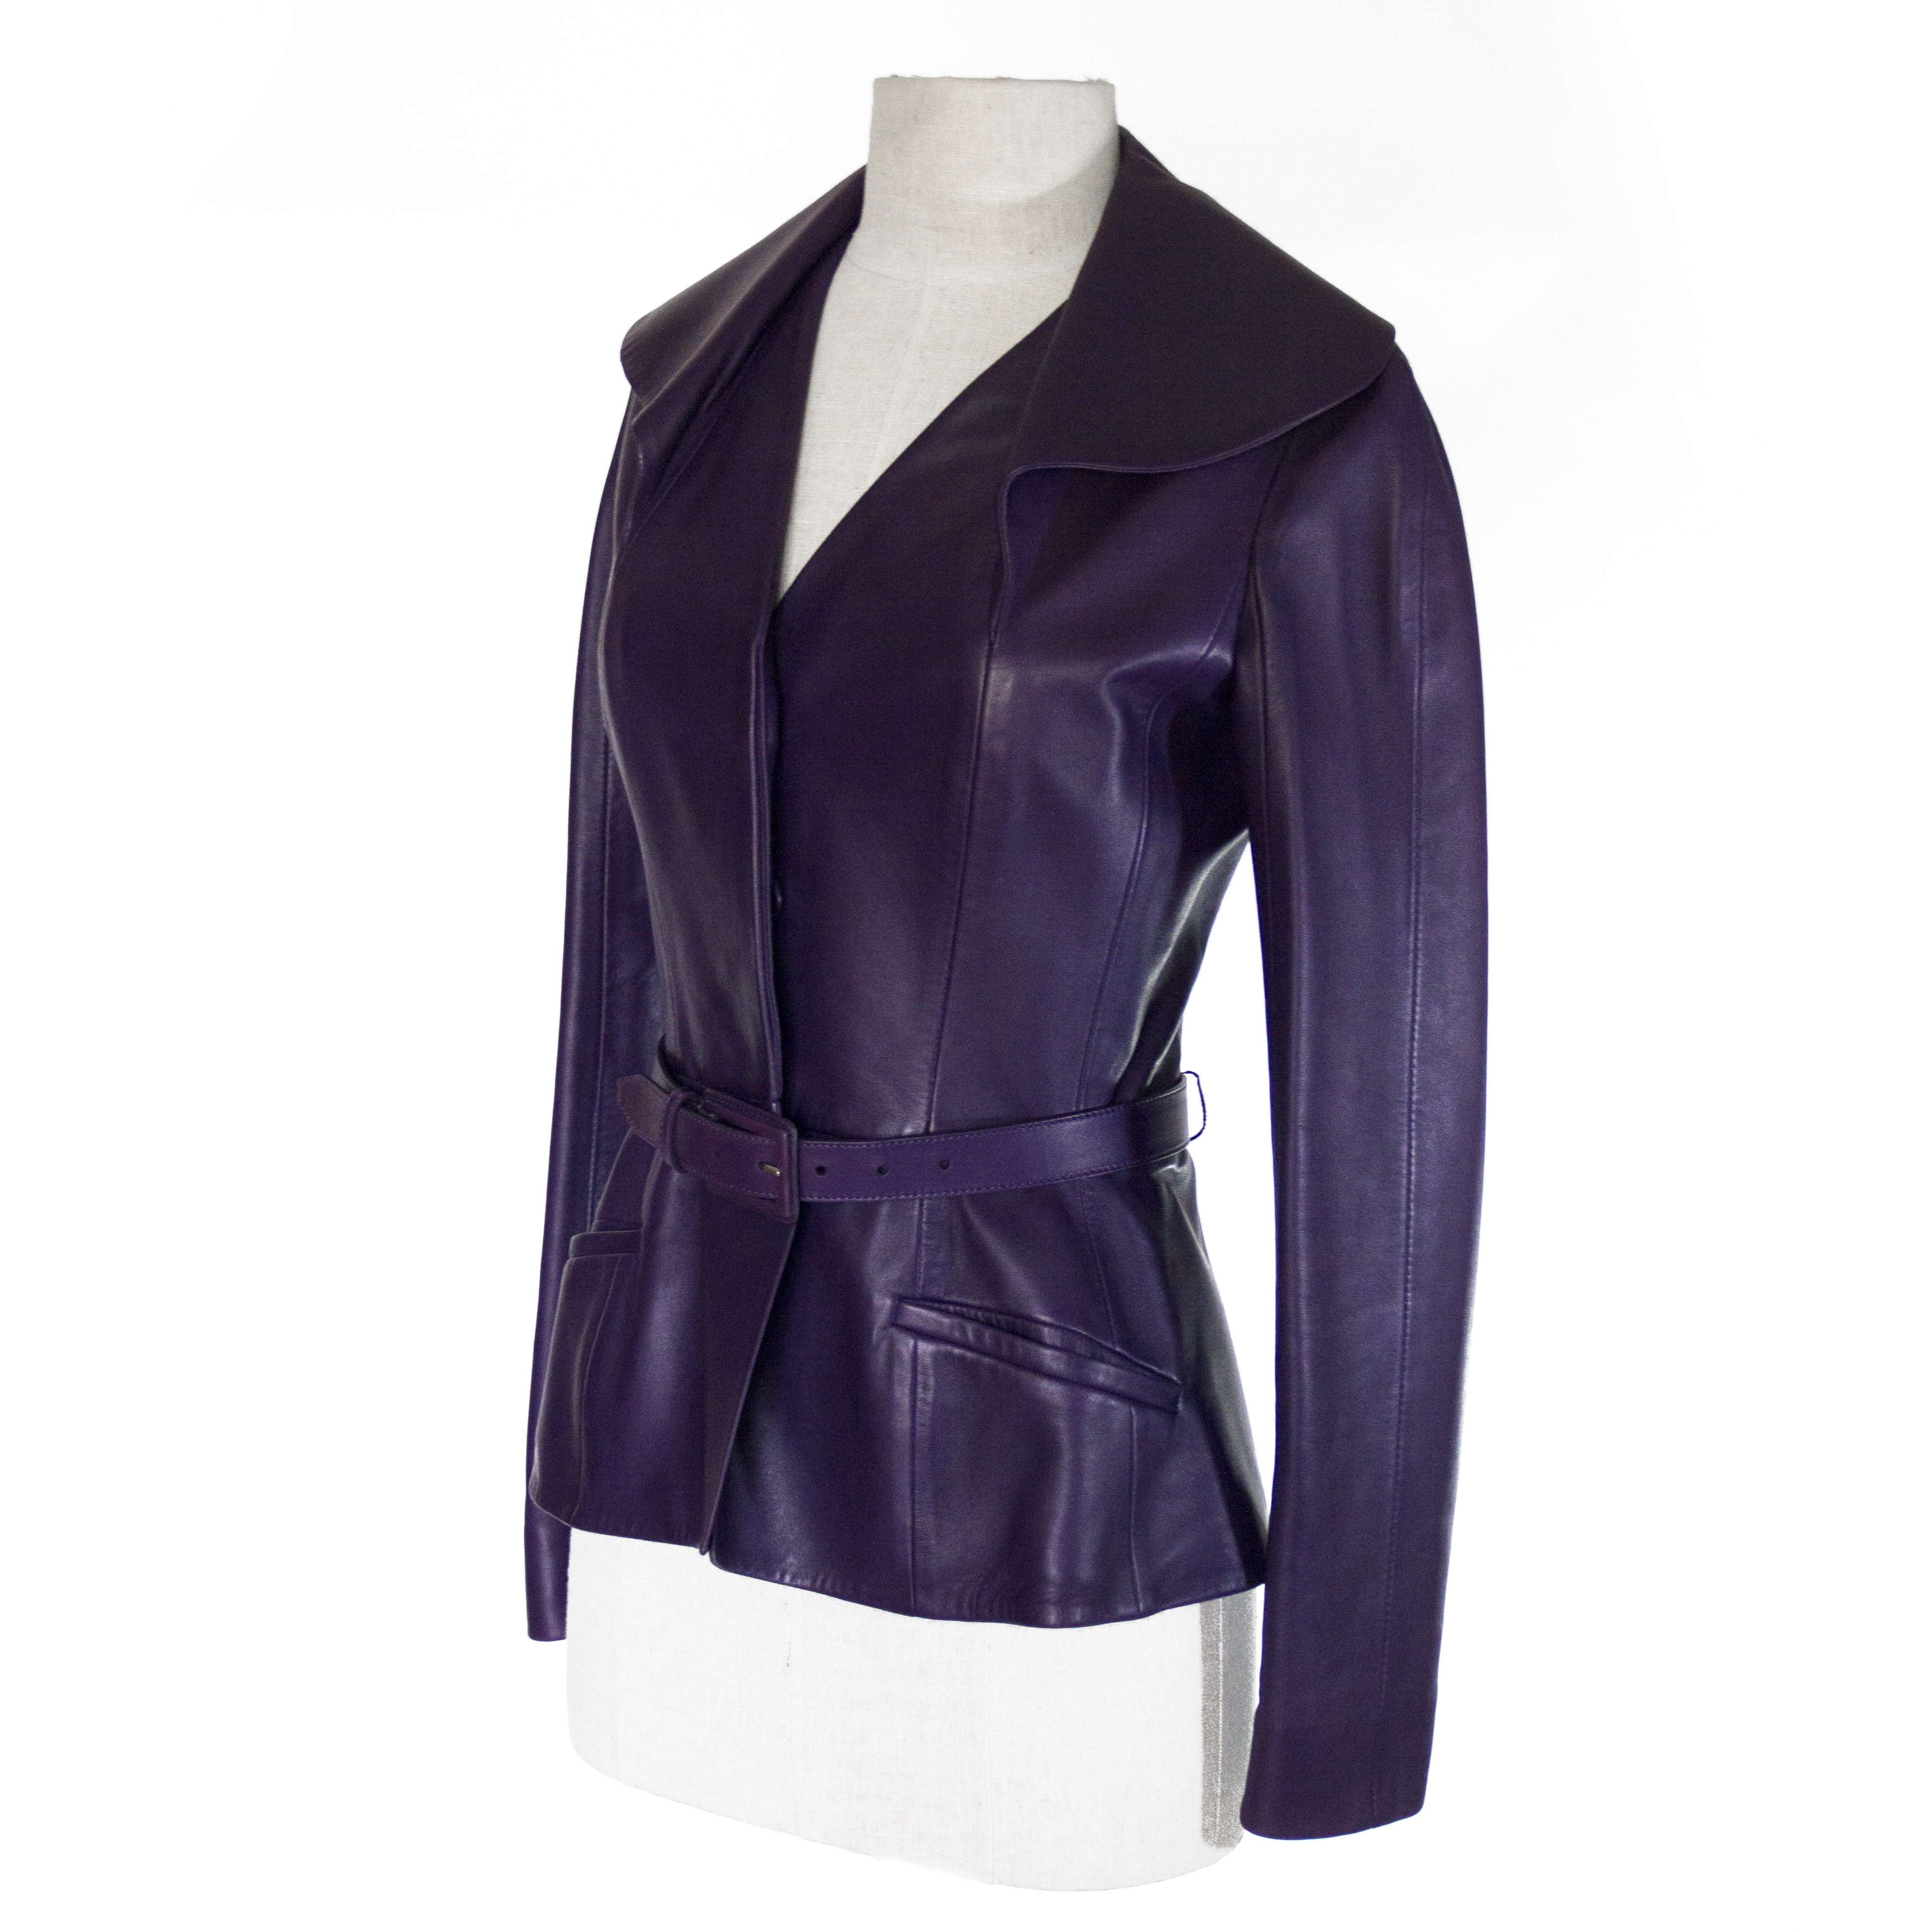 Christian Dior Leather Jacket 2.jpg